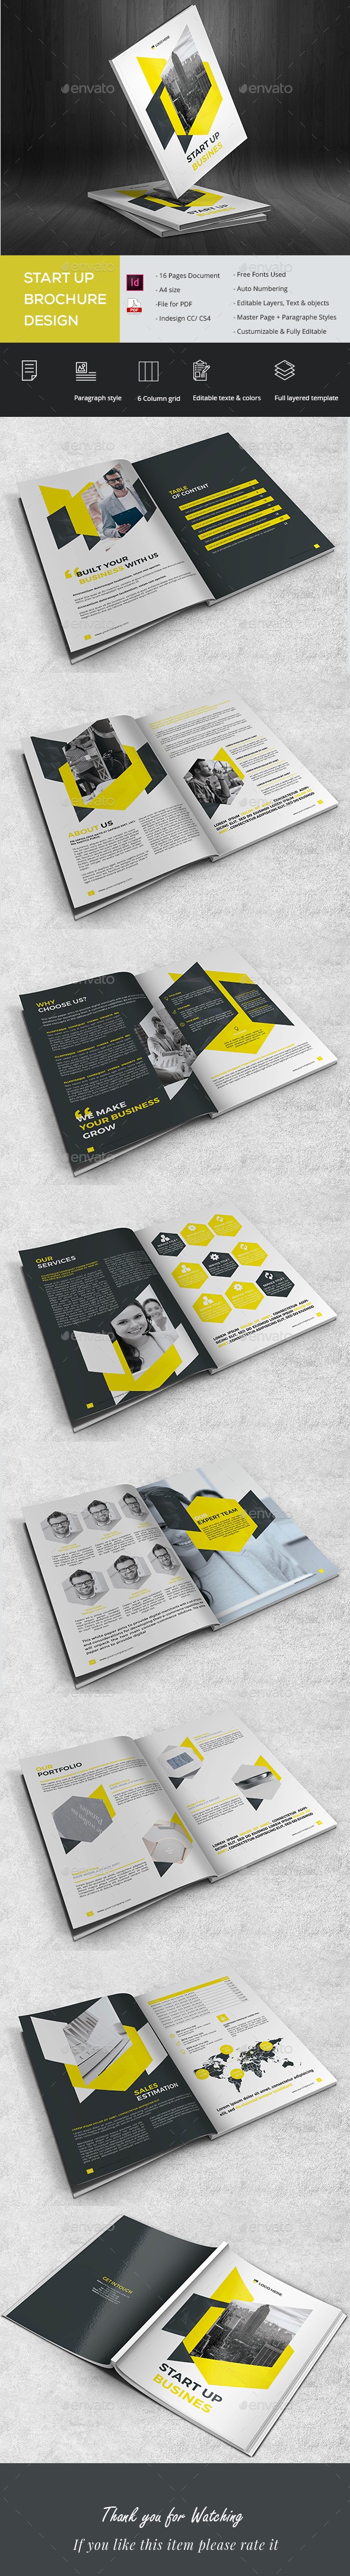 Start Up Brochure - Brochures Print Templates